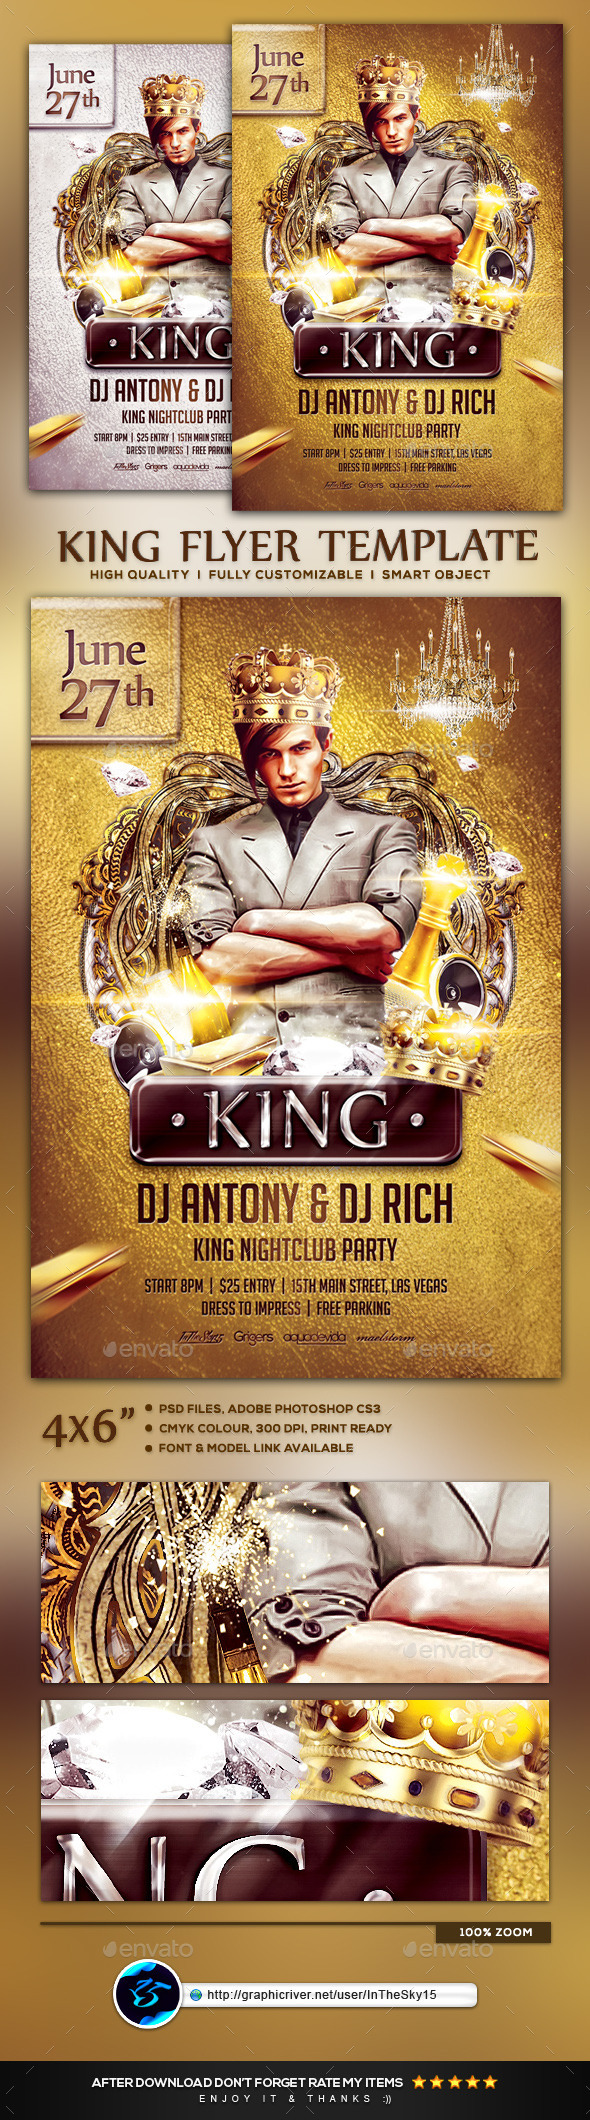 King Flyer Template - Flyers Print Templates